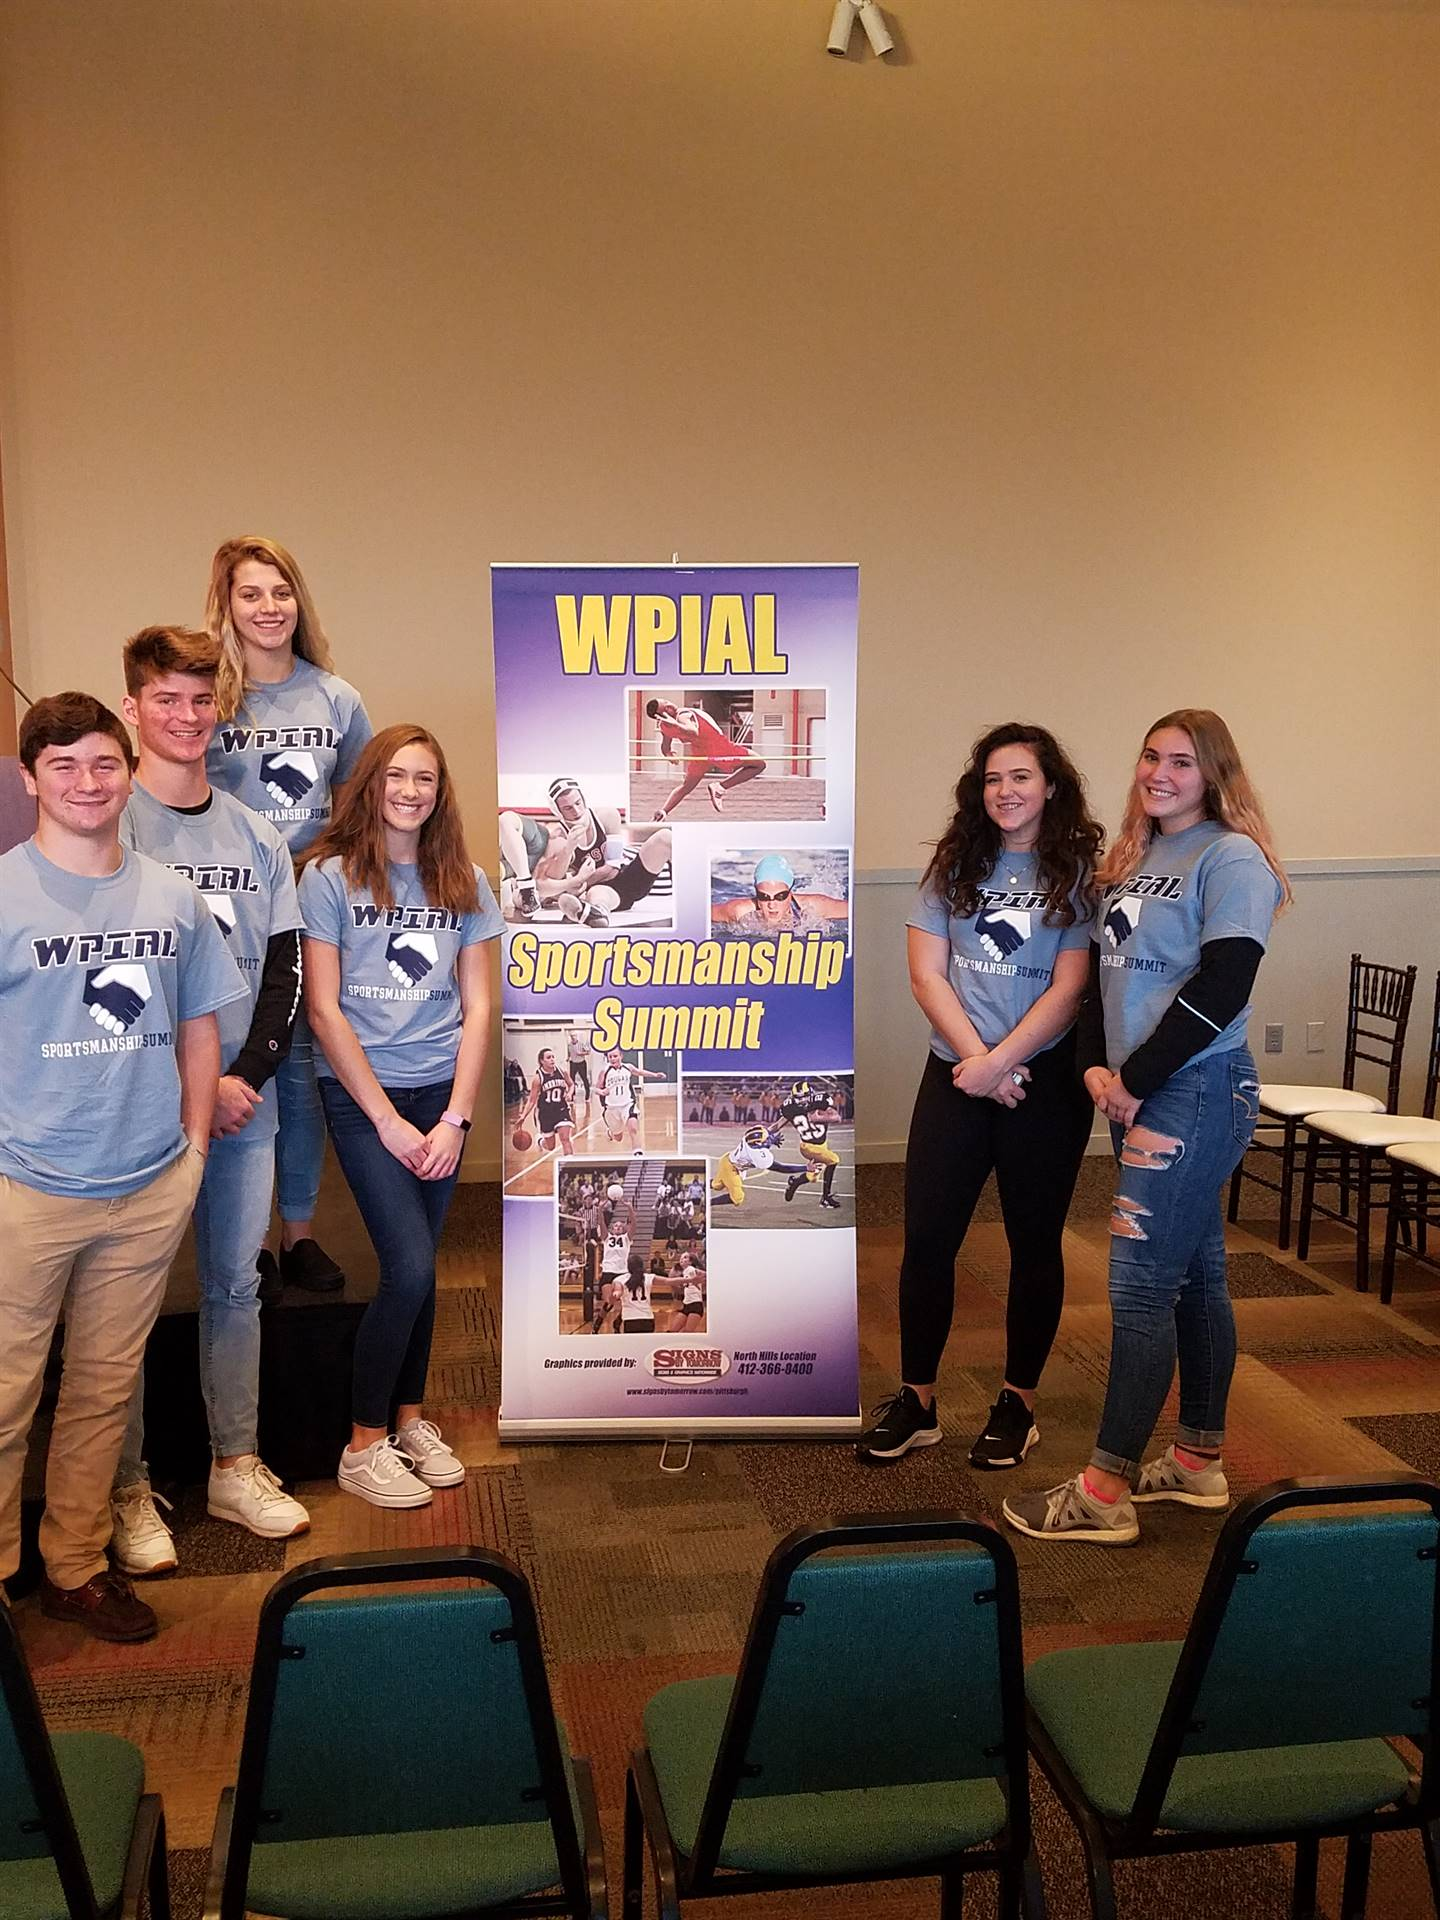 WPIAL Sportsman Summit